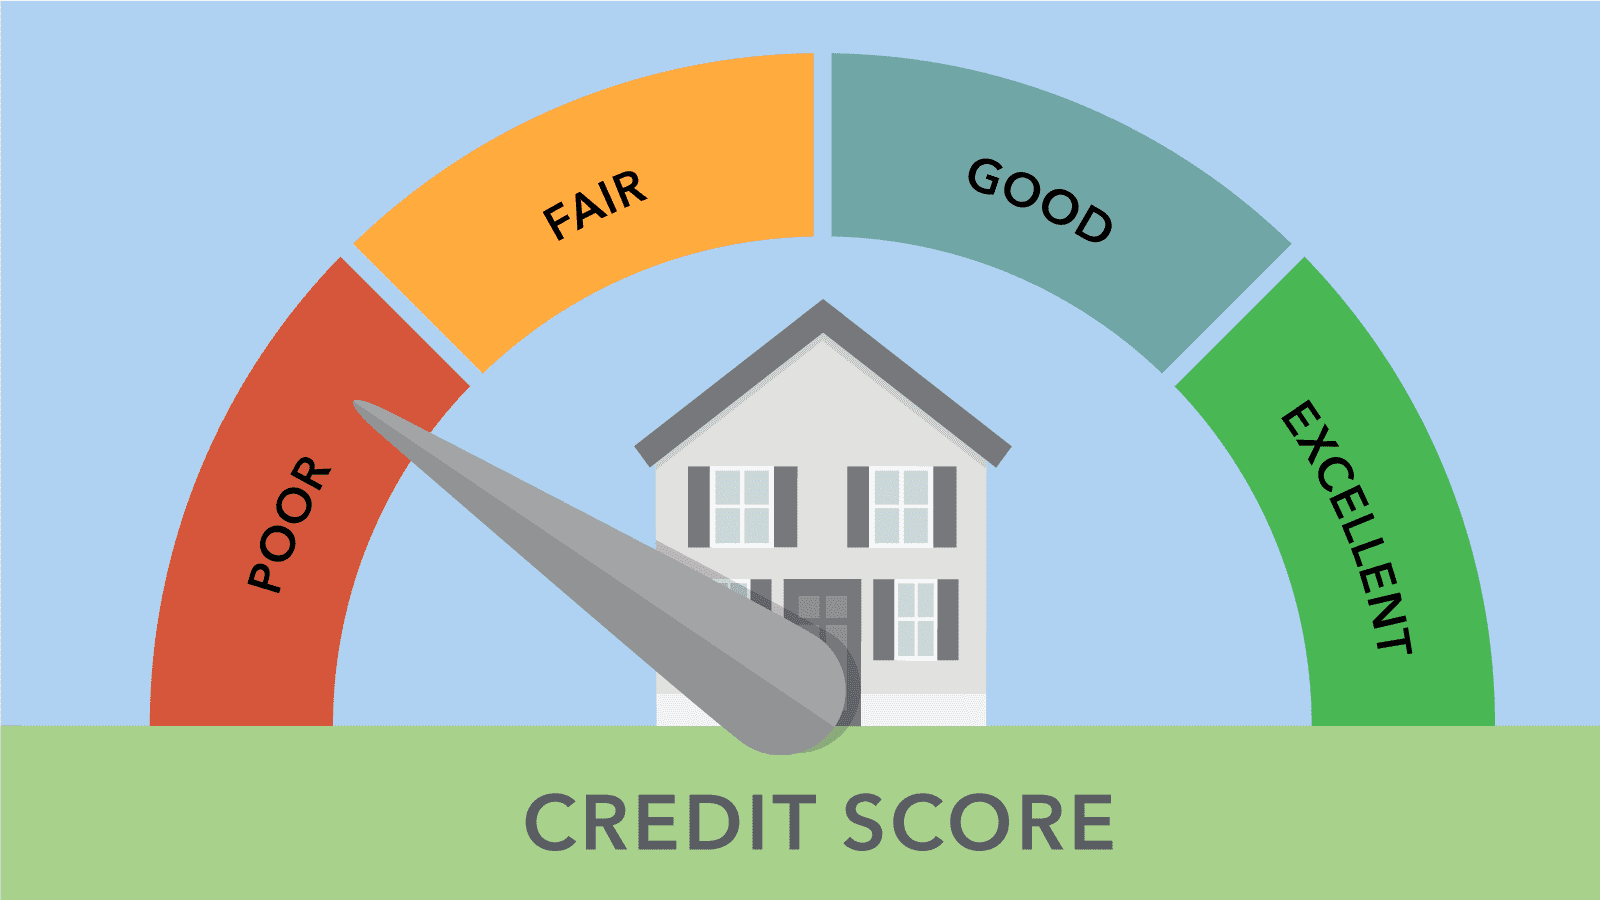 IMproving your business credit rating